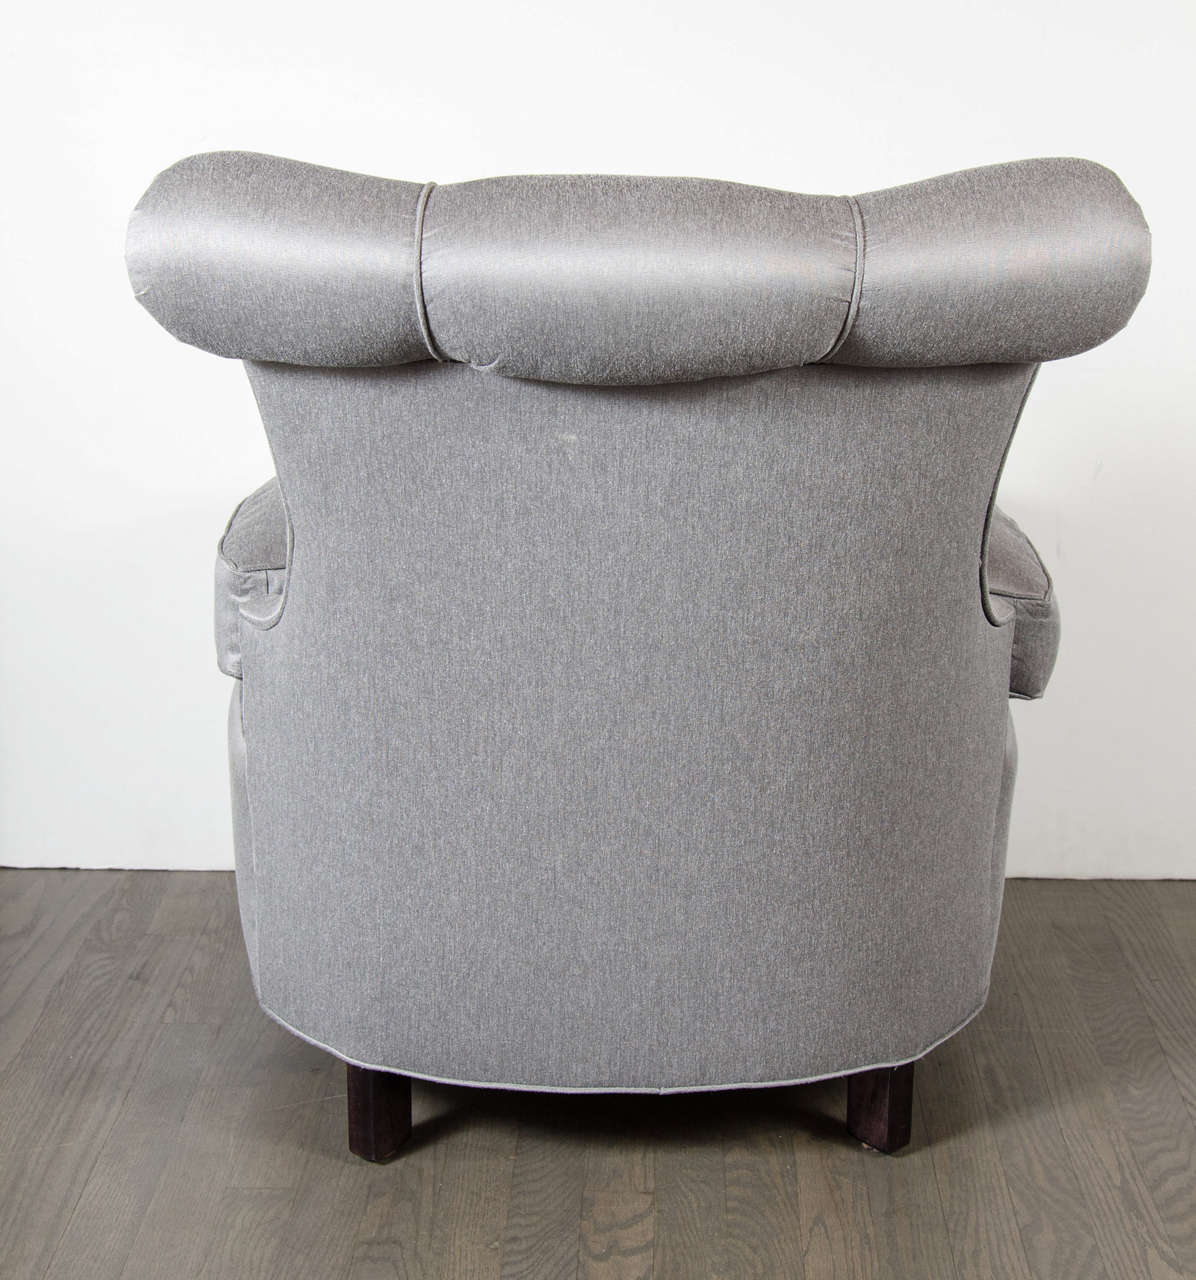 Mid-20th Century Glamorous 1940s Hollywood Scroll Design Slipper Chair by Dorothy Draper For Sale